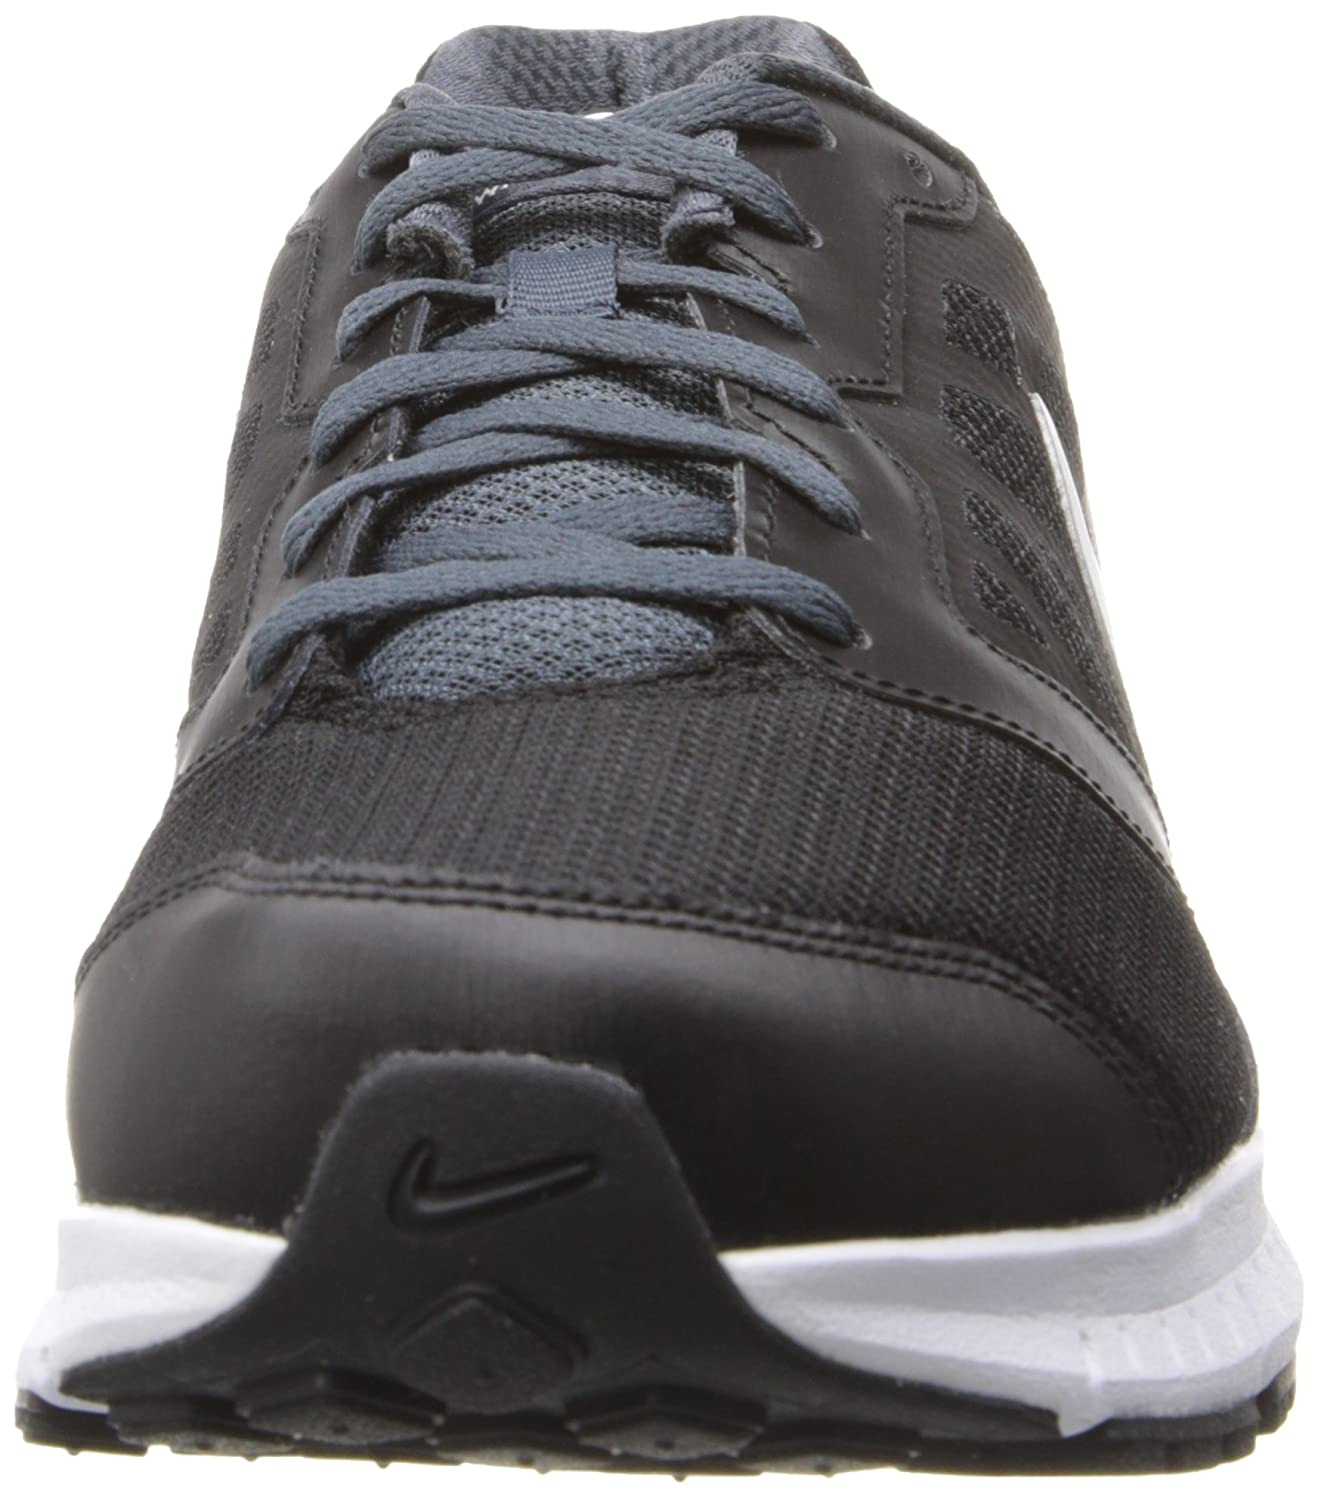 nike running shoes for men blue. nike men\u0027s downshifter 6 msl running shoes: buy online at low prices in india - amazon.in shoes for men blue m